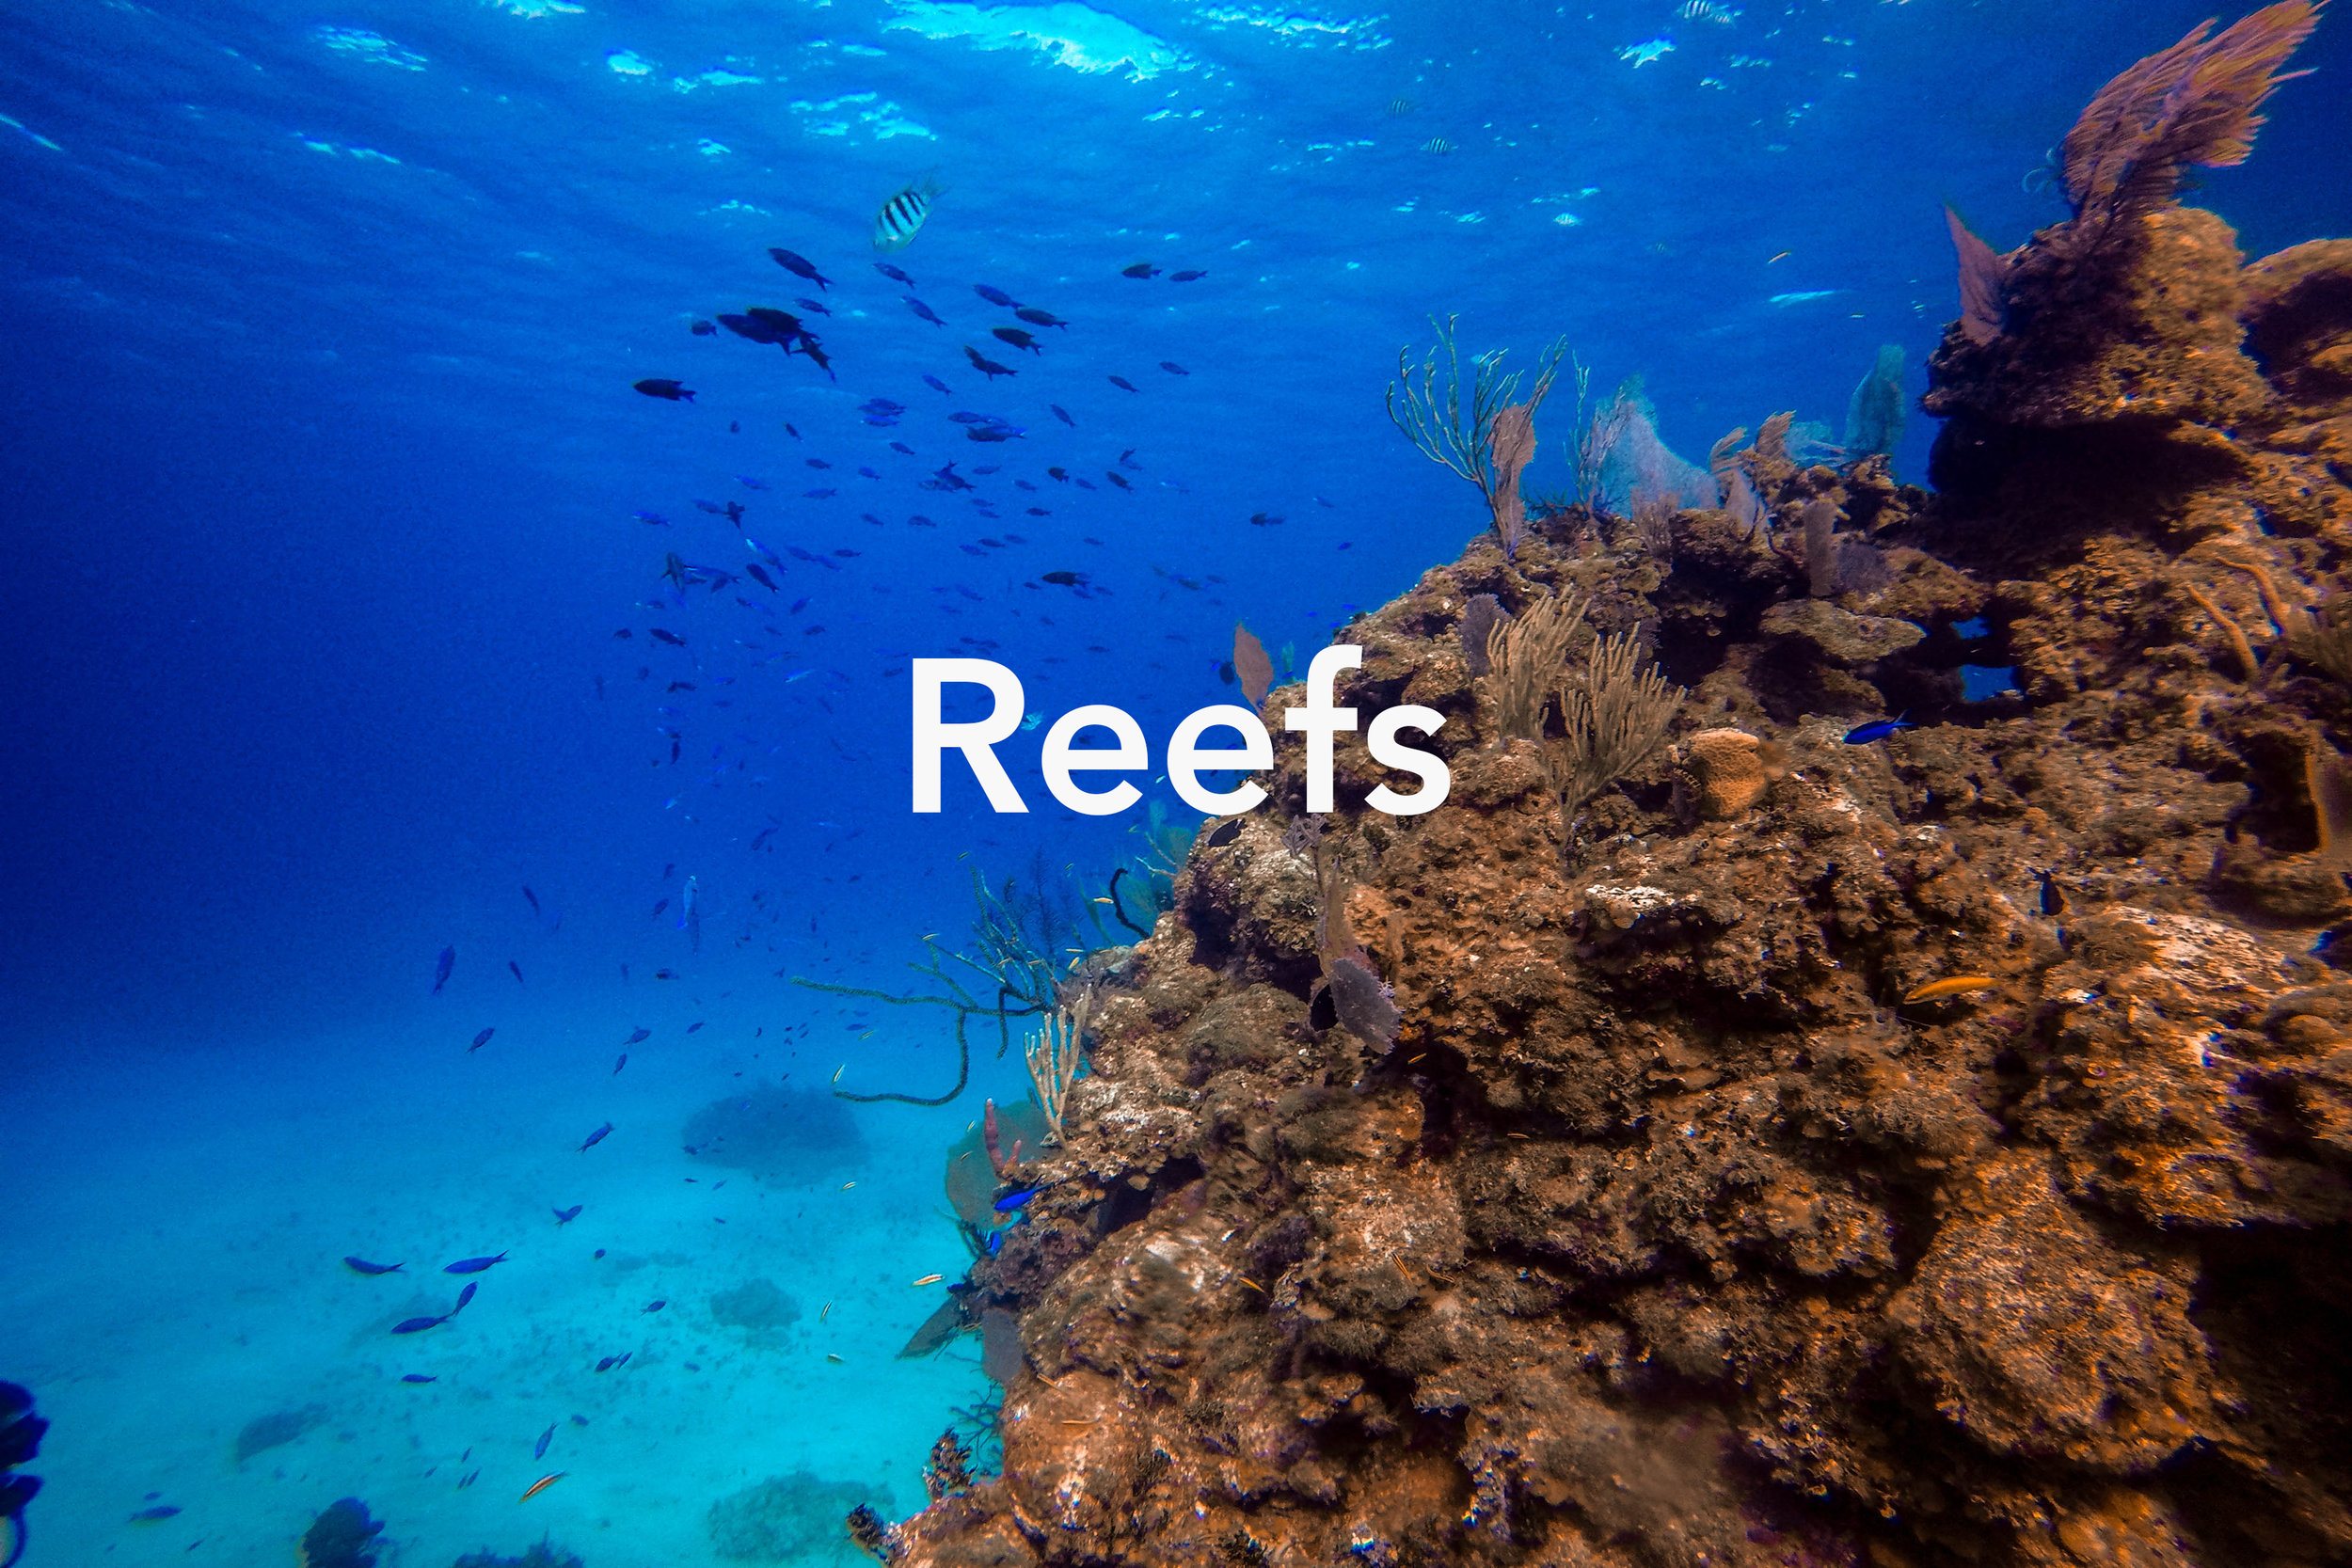 Reefs Cover May 19.jpg